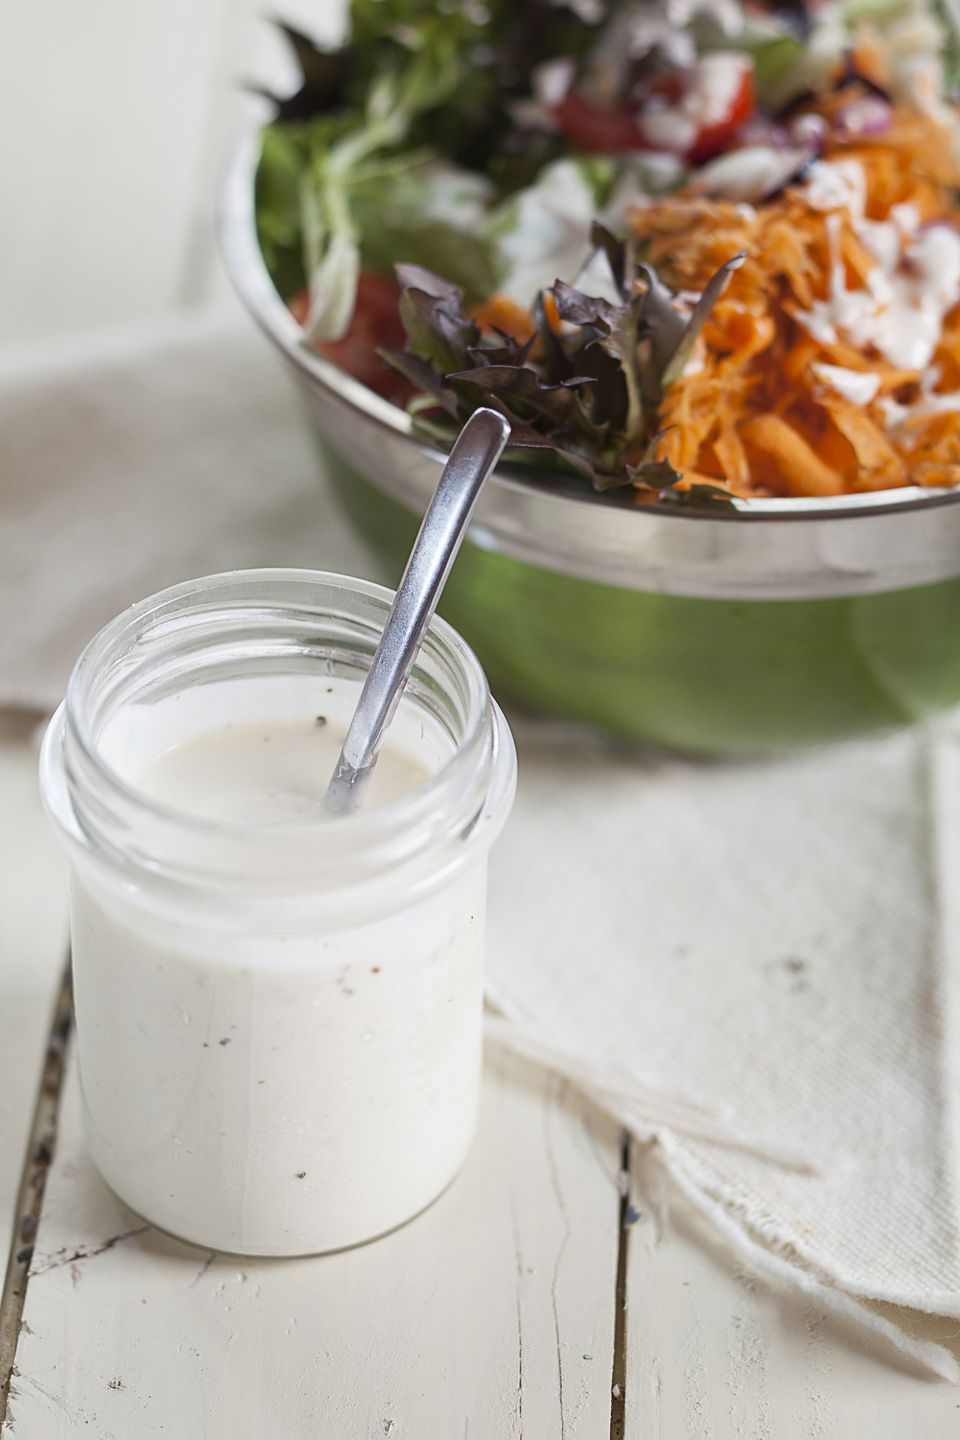 Garlic yogurt salad dressing